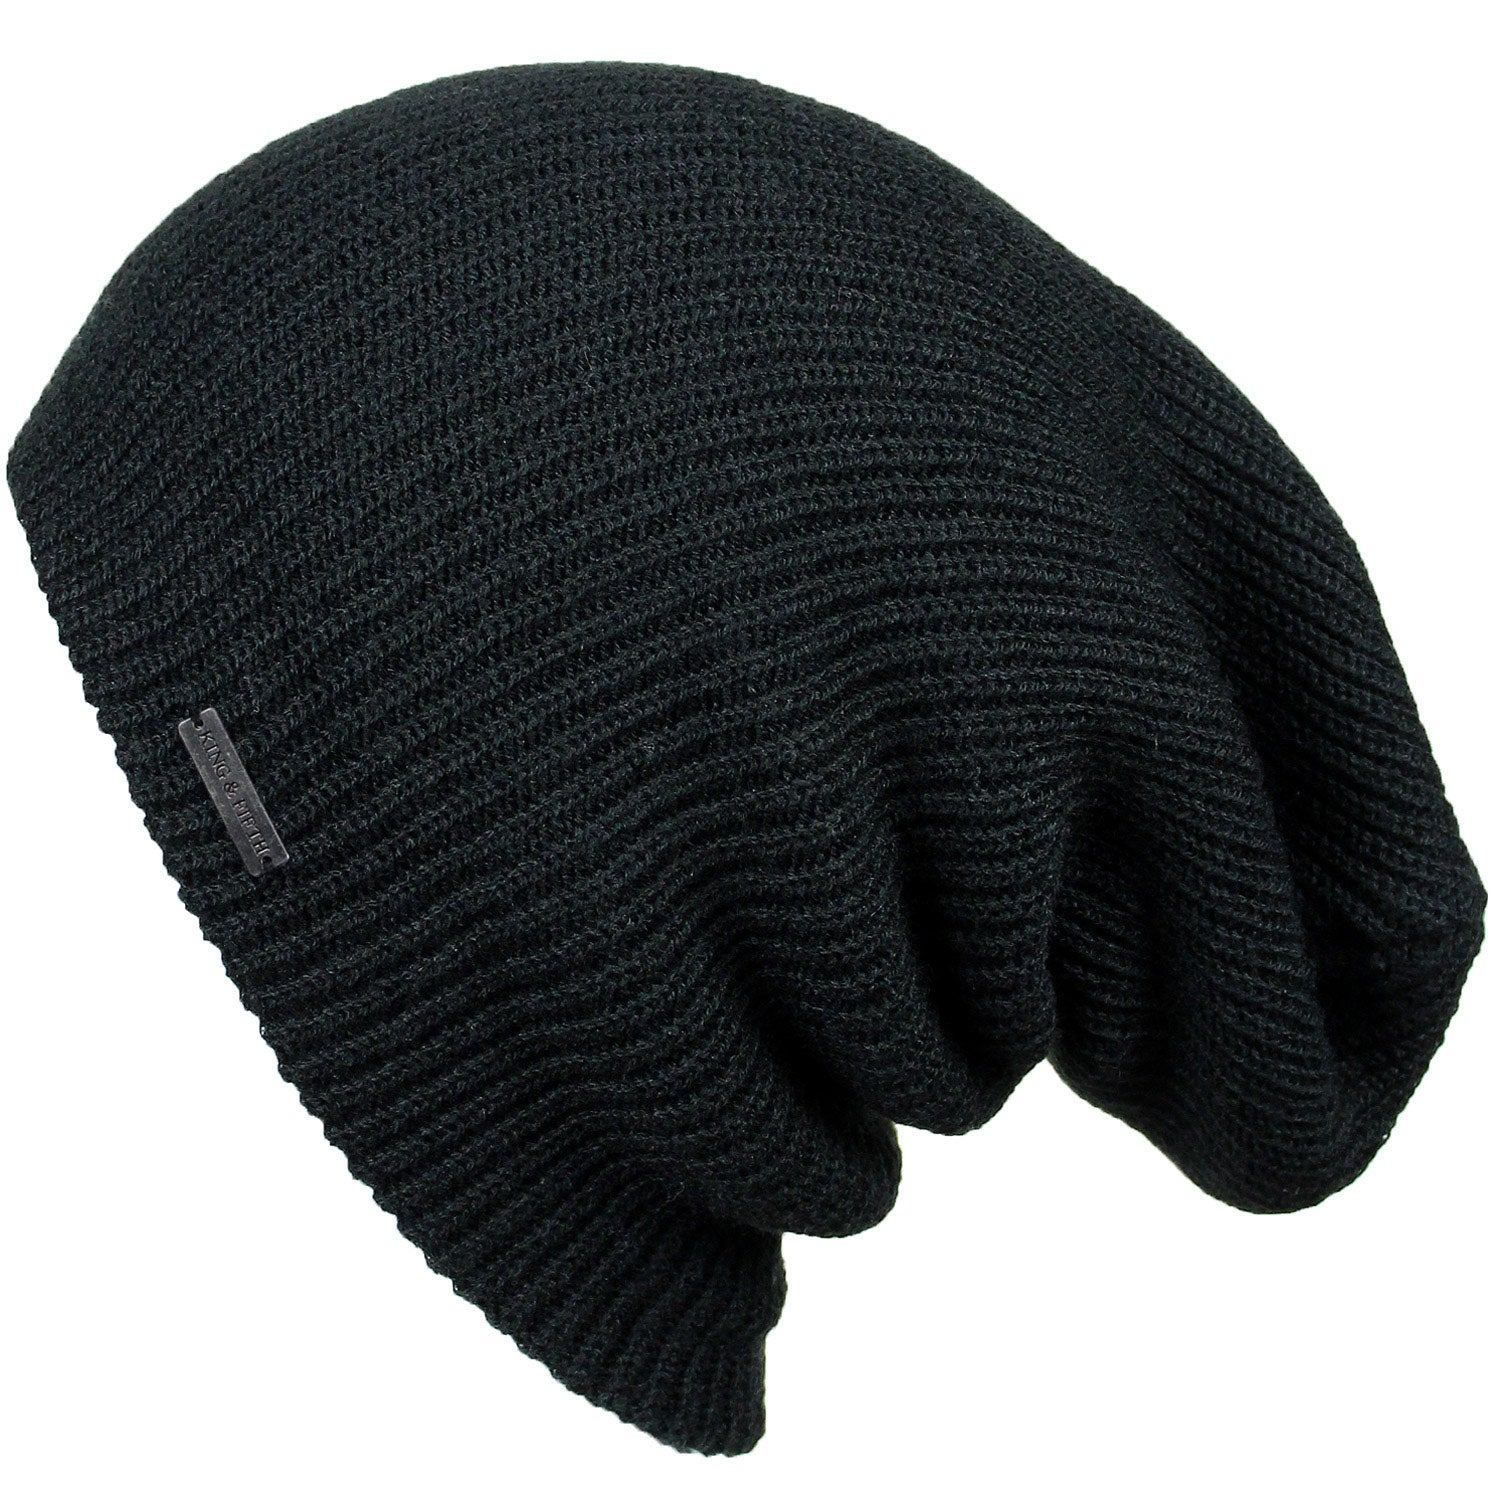 Mens Slouchy Beanie - The Forte XL